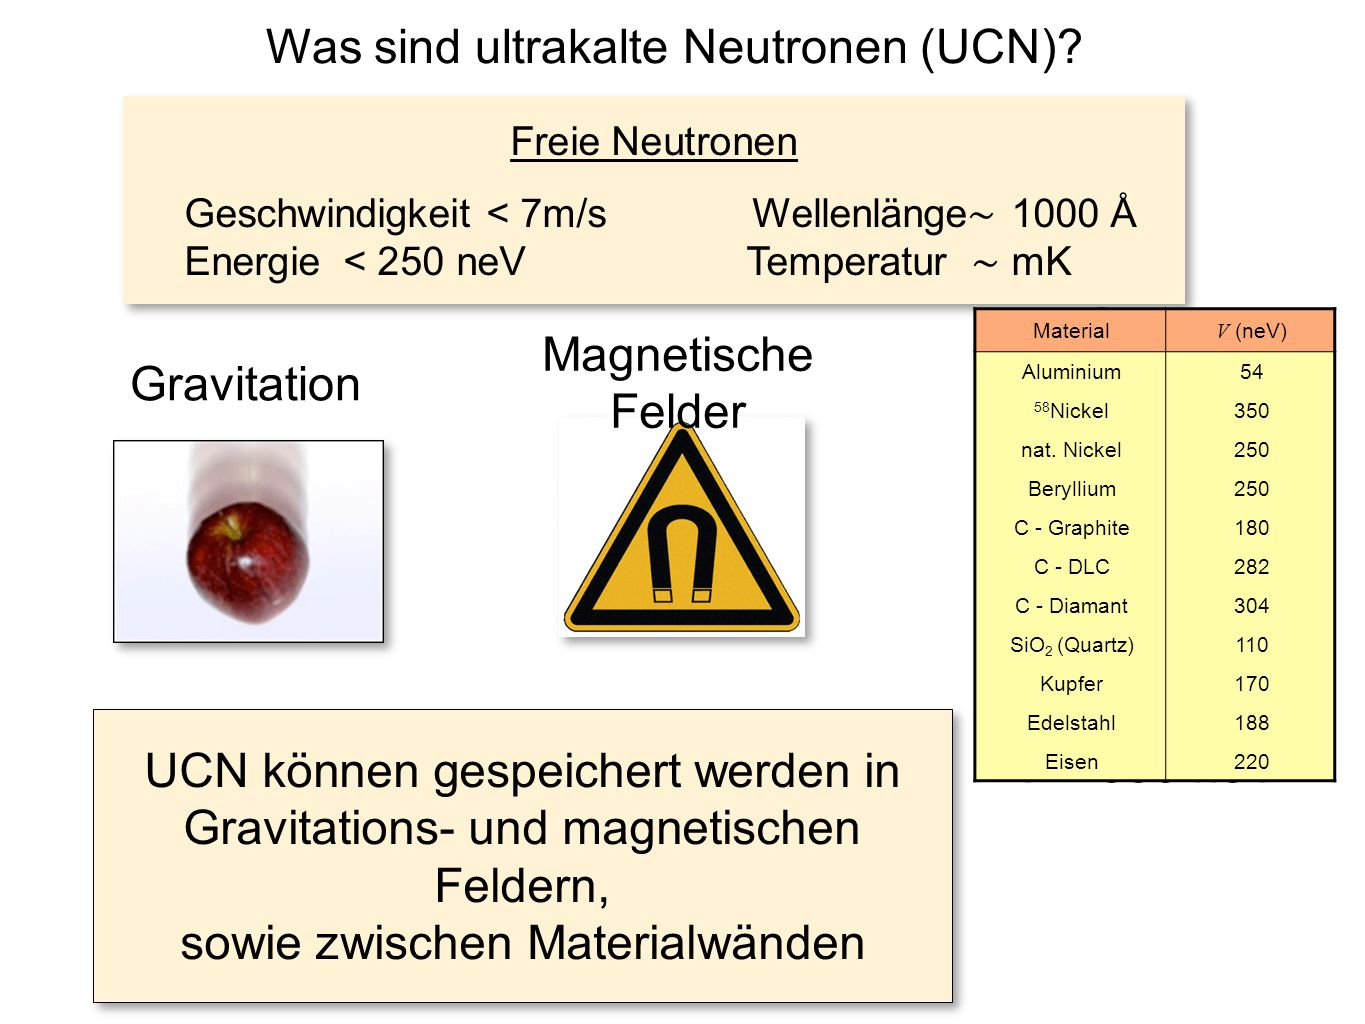 Was sind ultrakalte Neutronen (UCN)